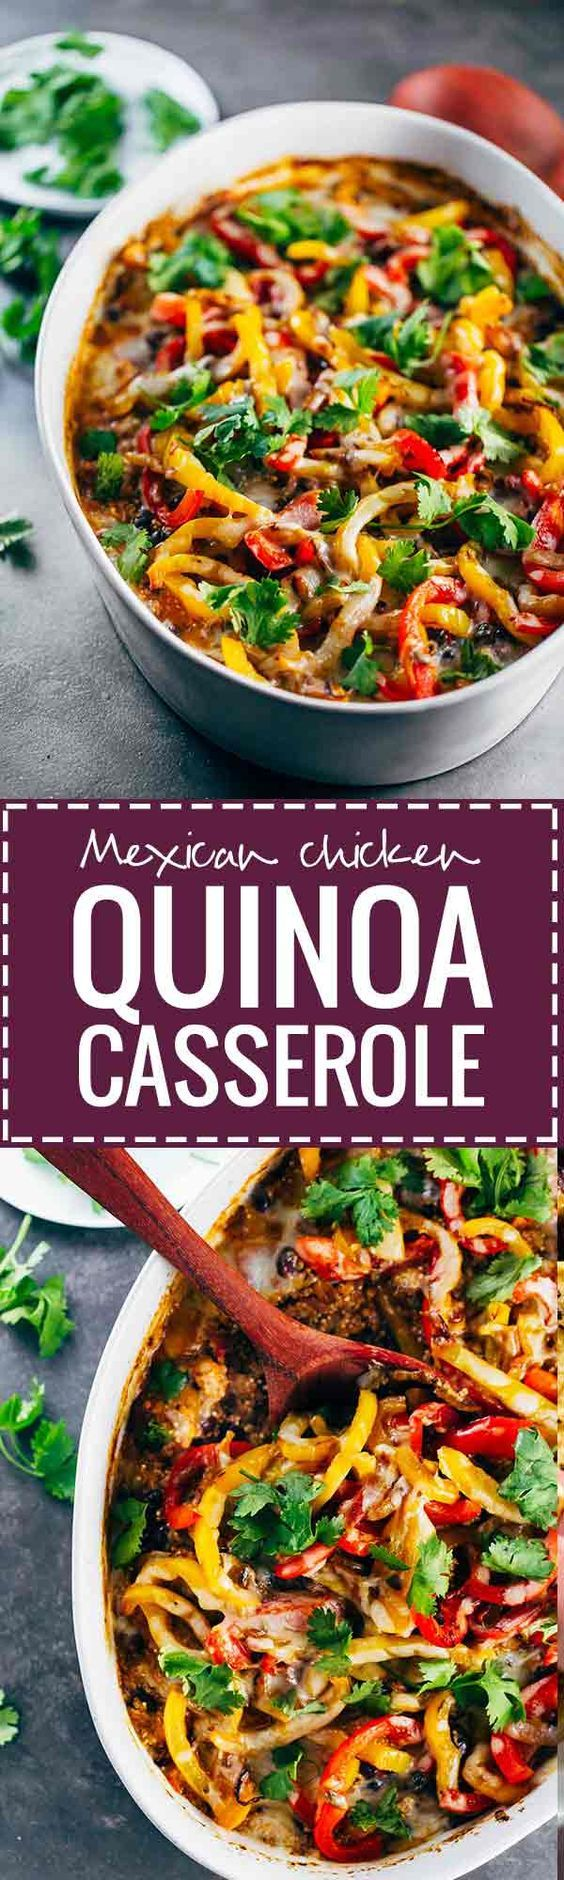 Easy Mexican Chicken Quinoa Casserole - simple, healthy, real food ingredients! | pinchofyum.com